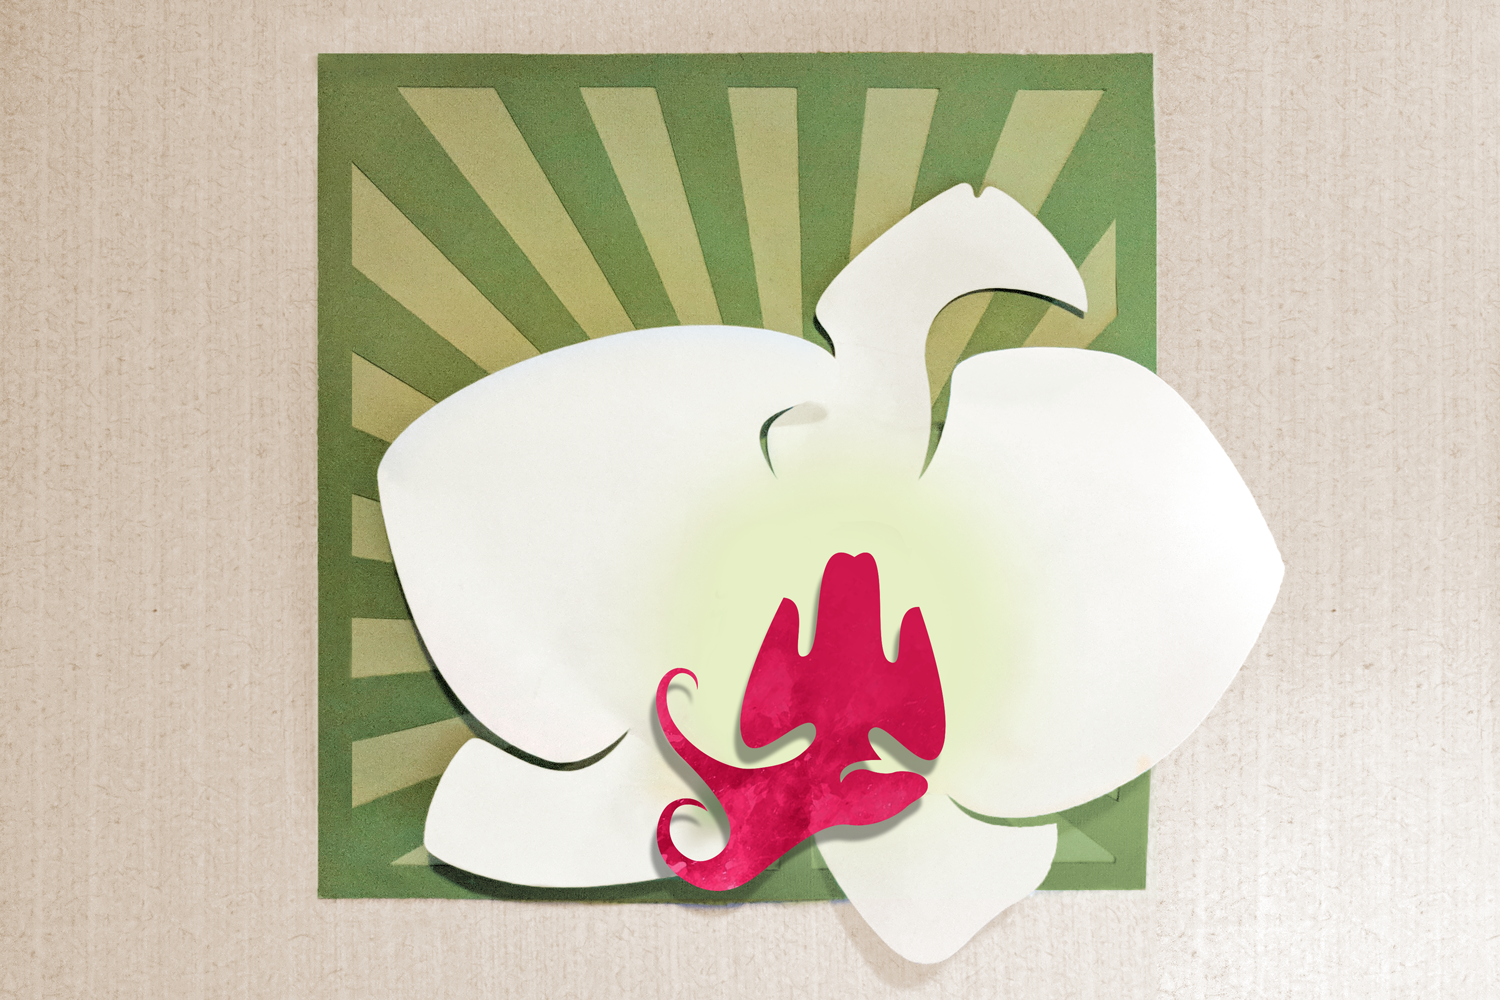 Orchid Art SVG Design example image 1